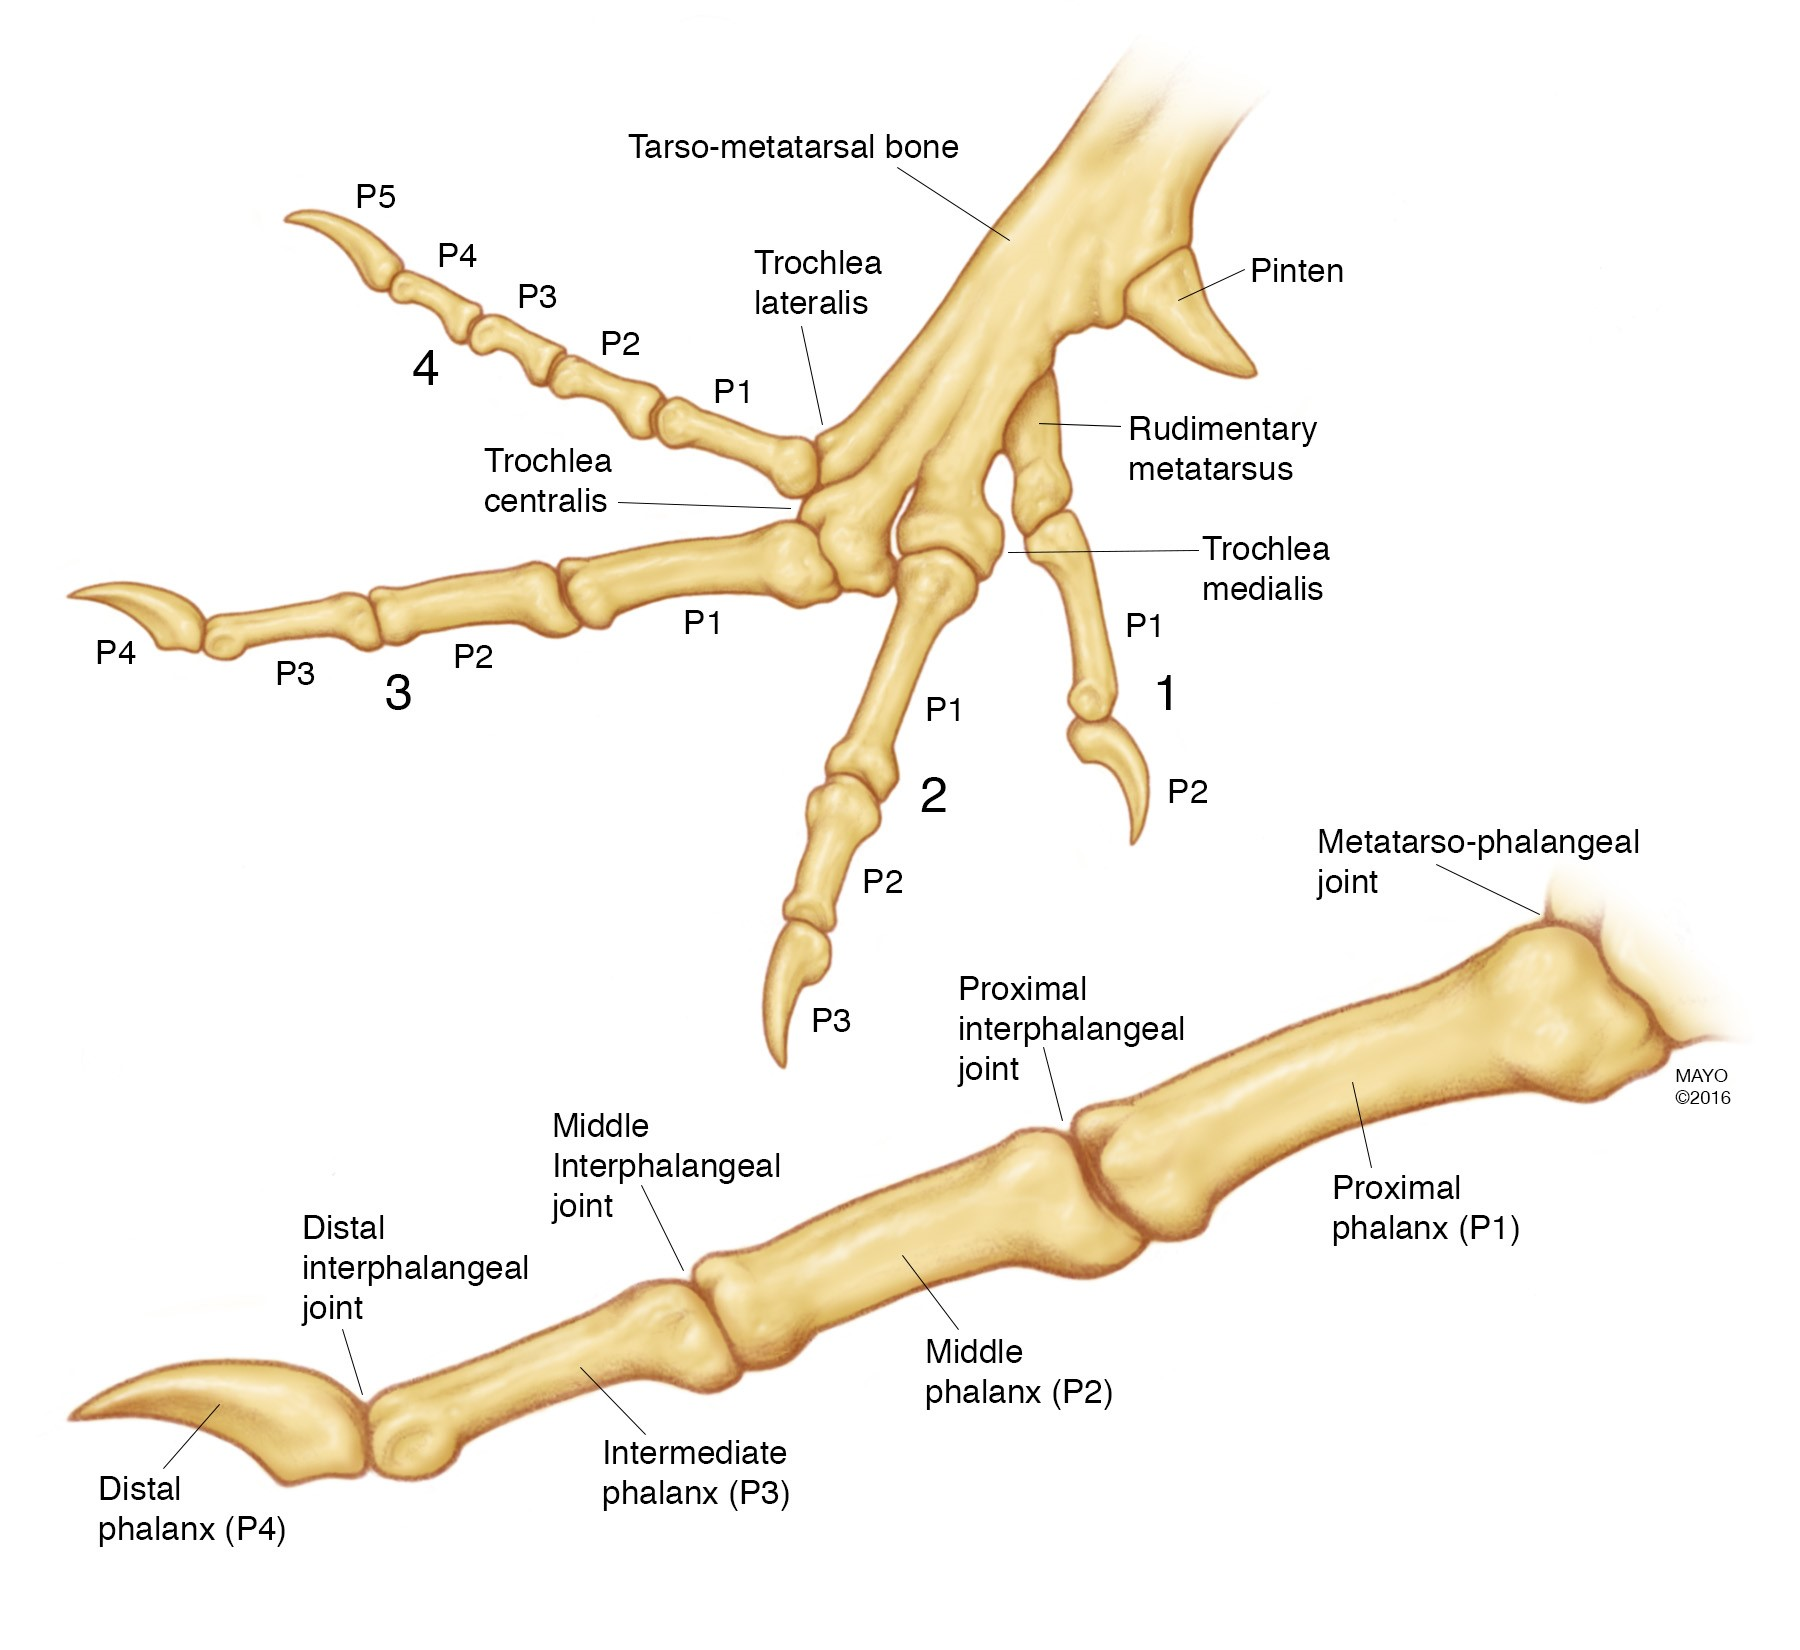 AAHS - Turkey Model for Flexor Tendon Related Research: An Anatomic ...